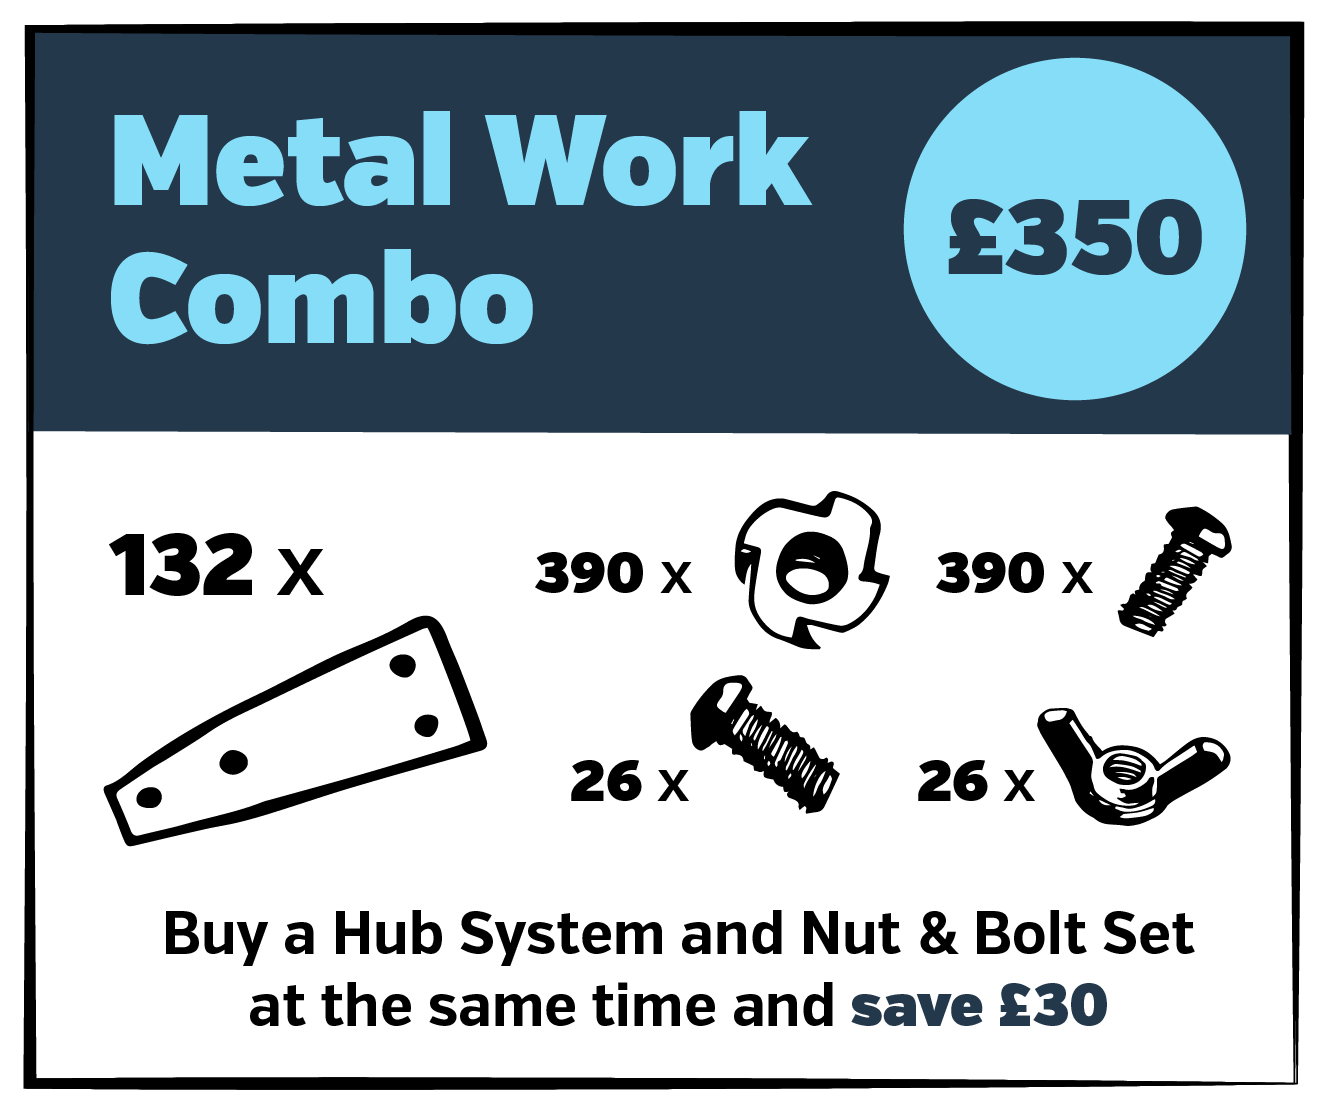 domemade prices 2019_Metal Work Combo Price List.png